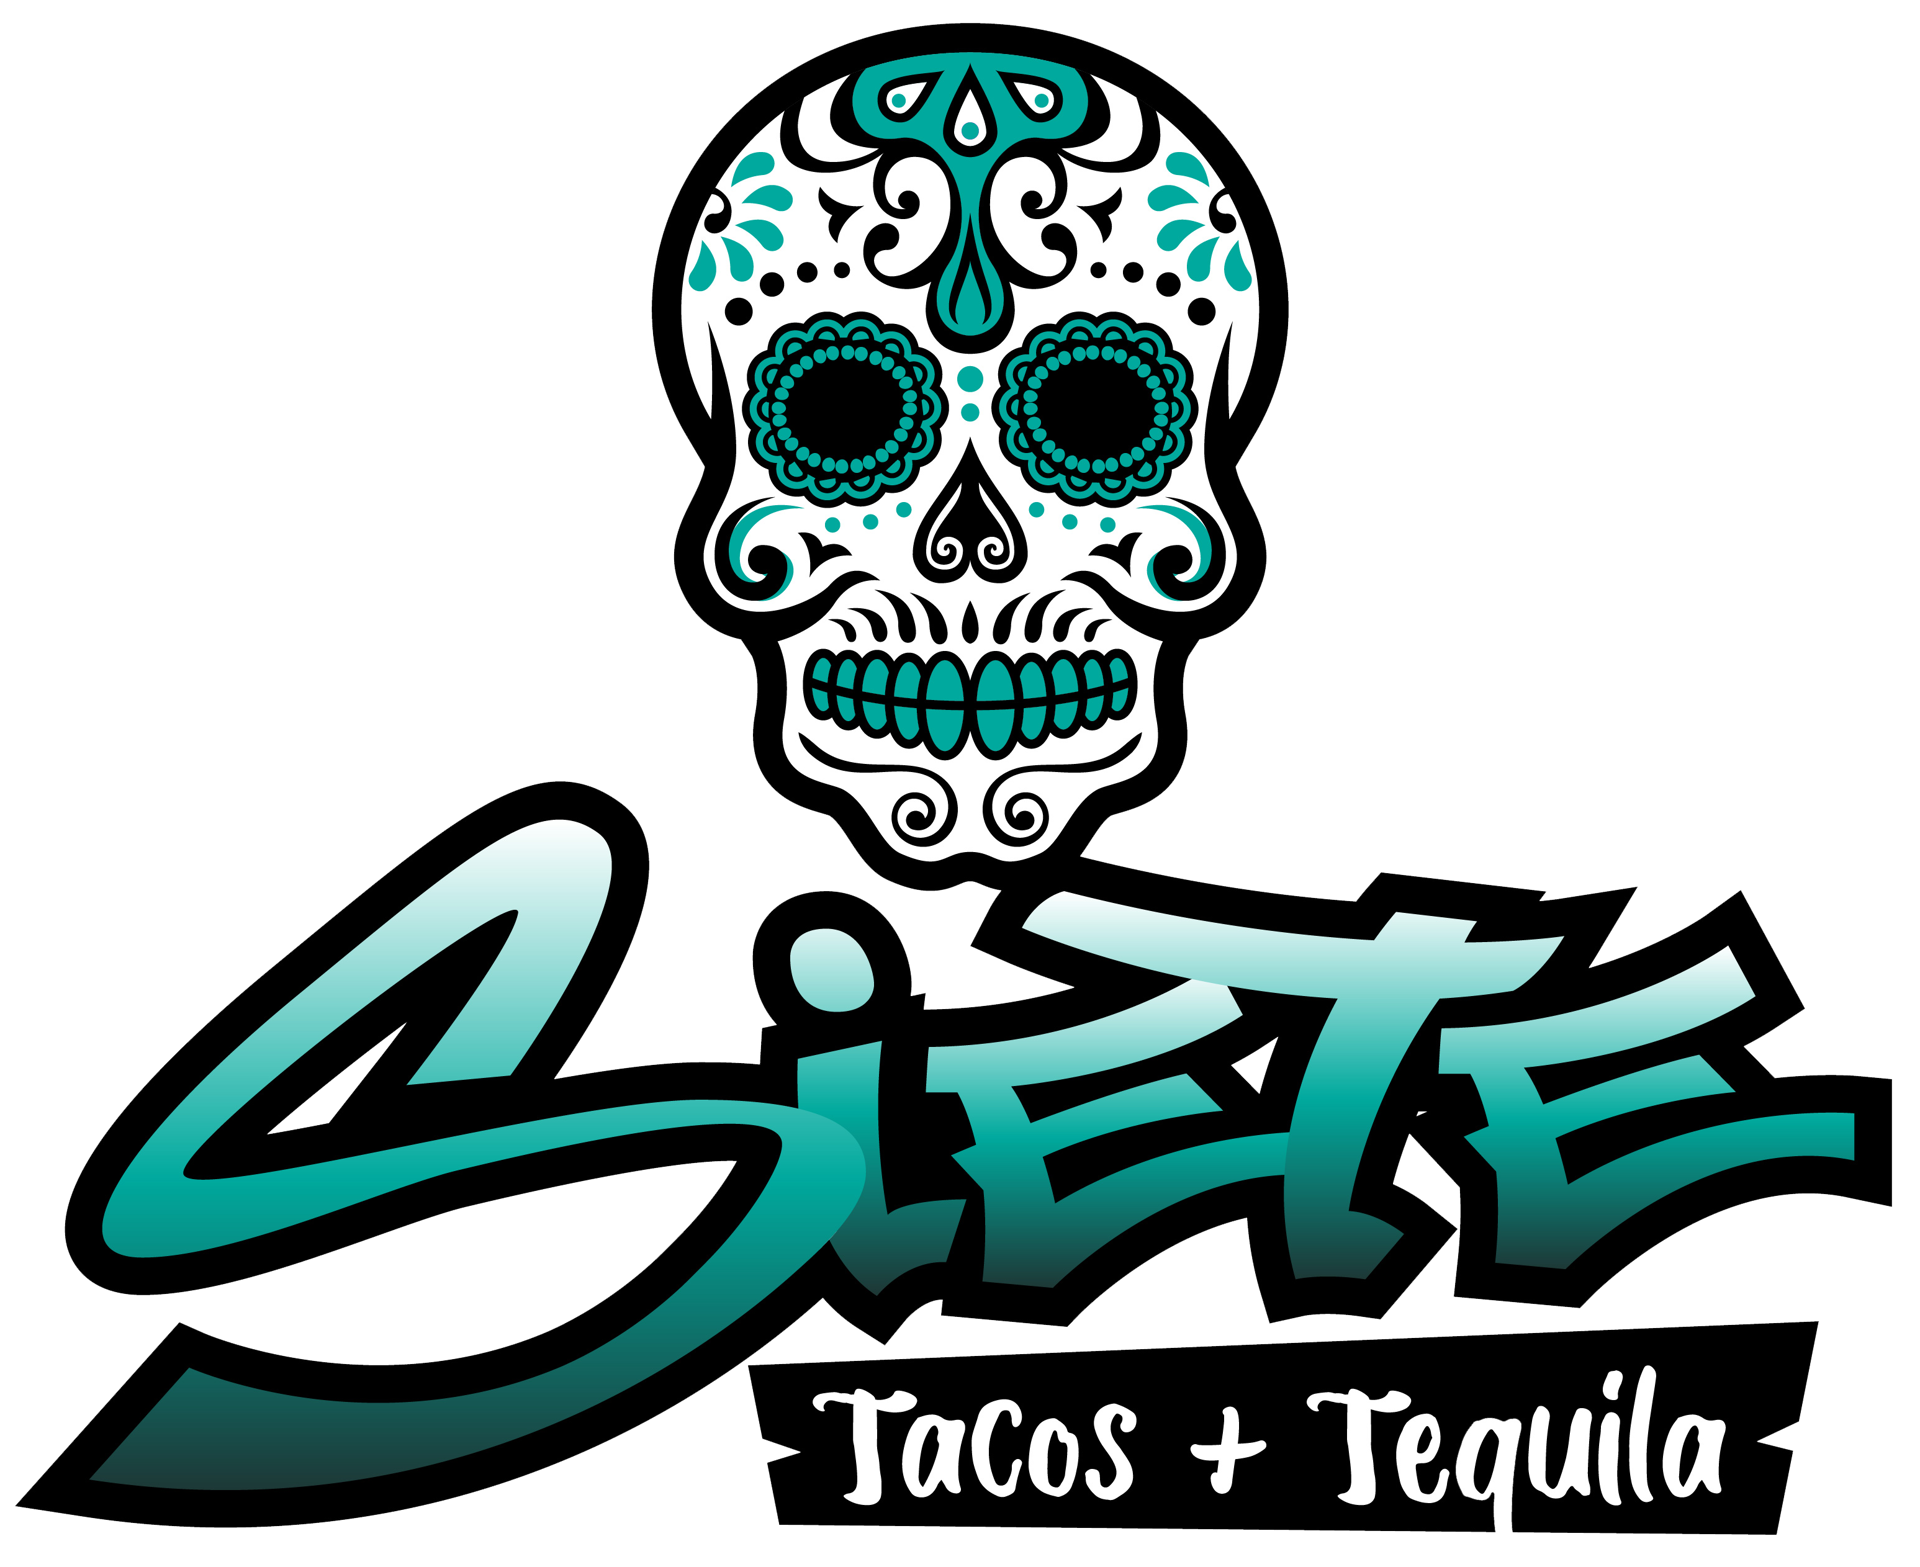 siete tacos and tequila logo